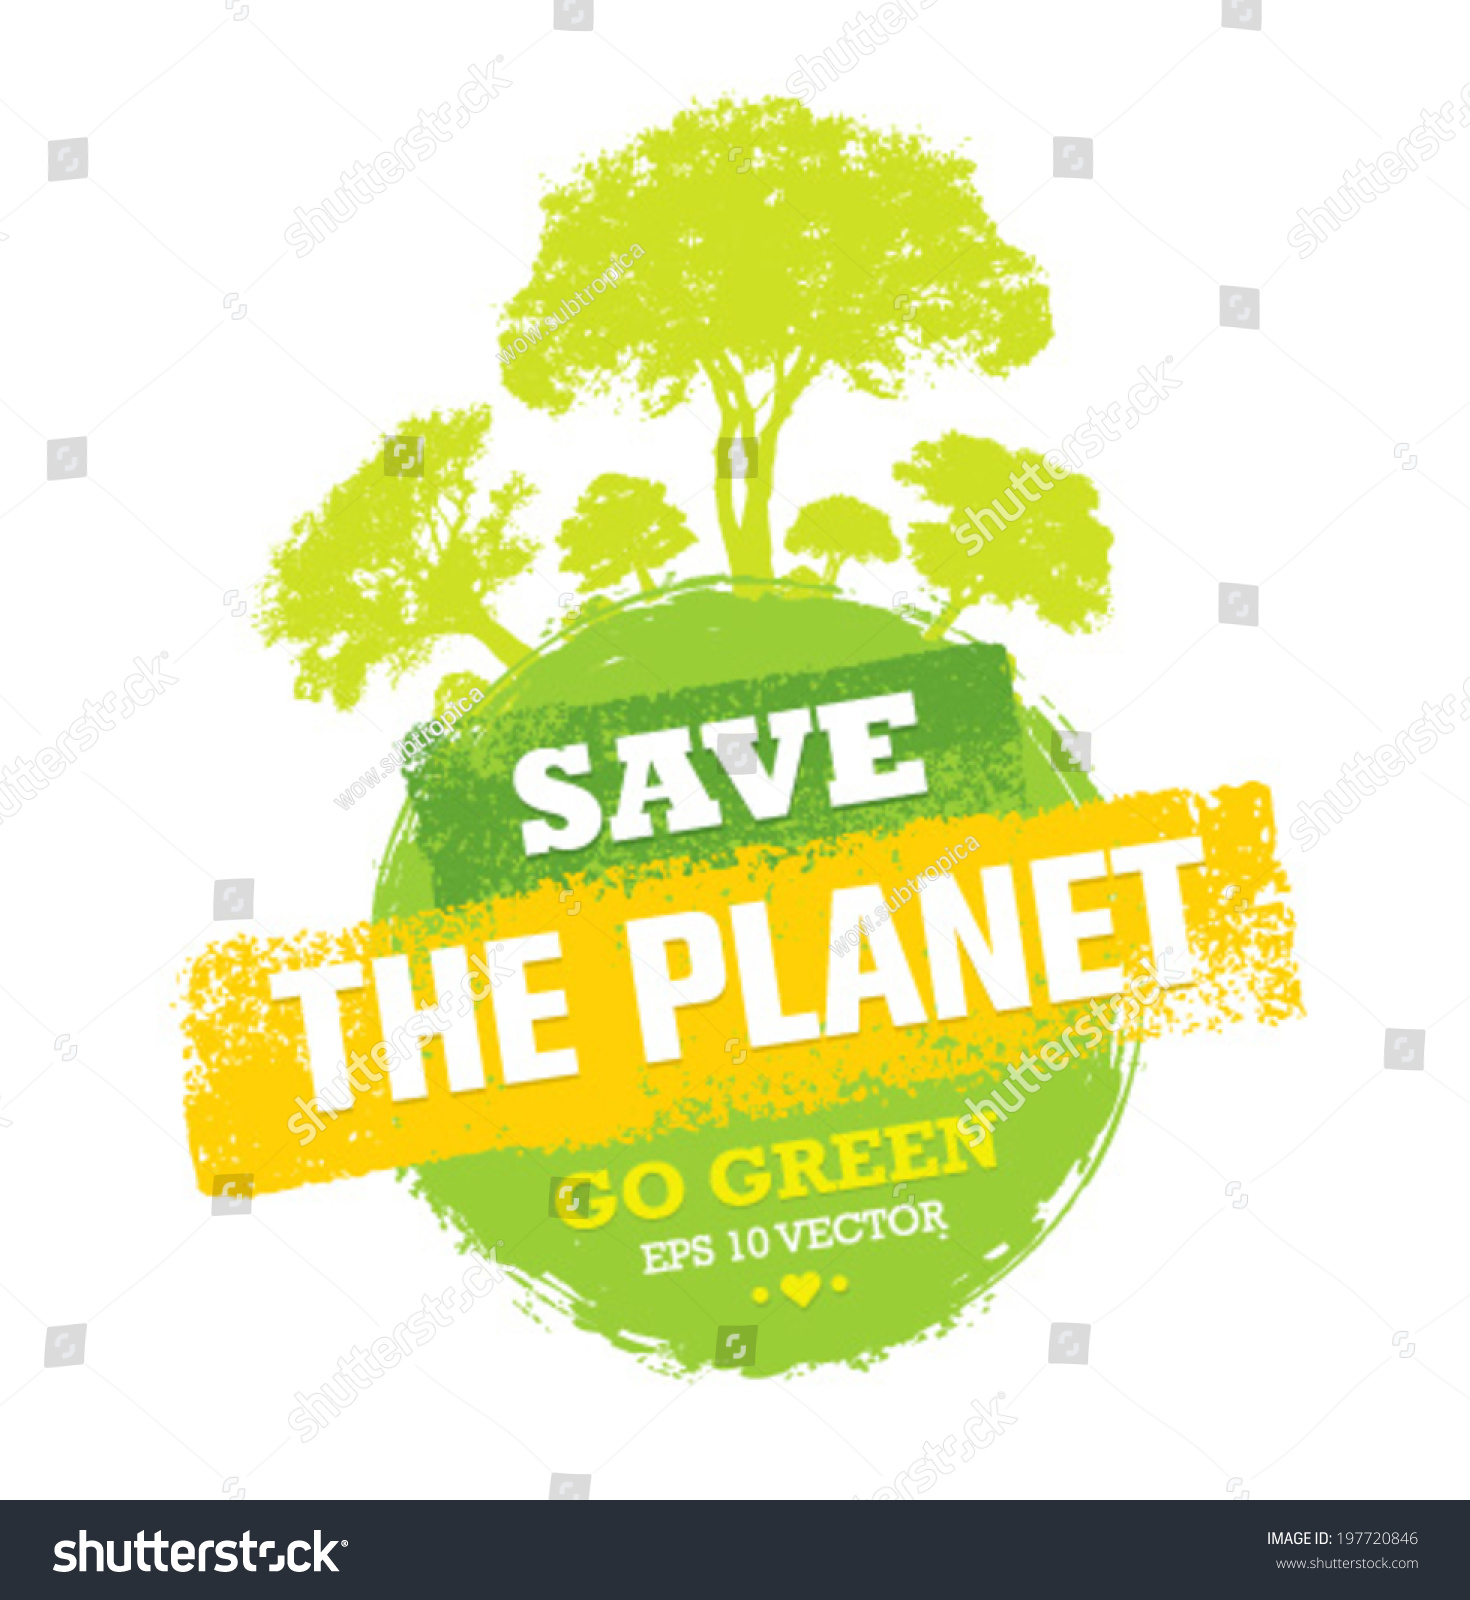 Essay on save trees go green